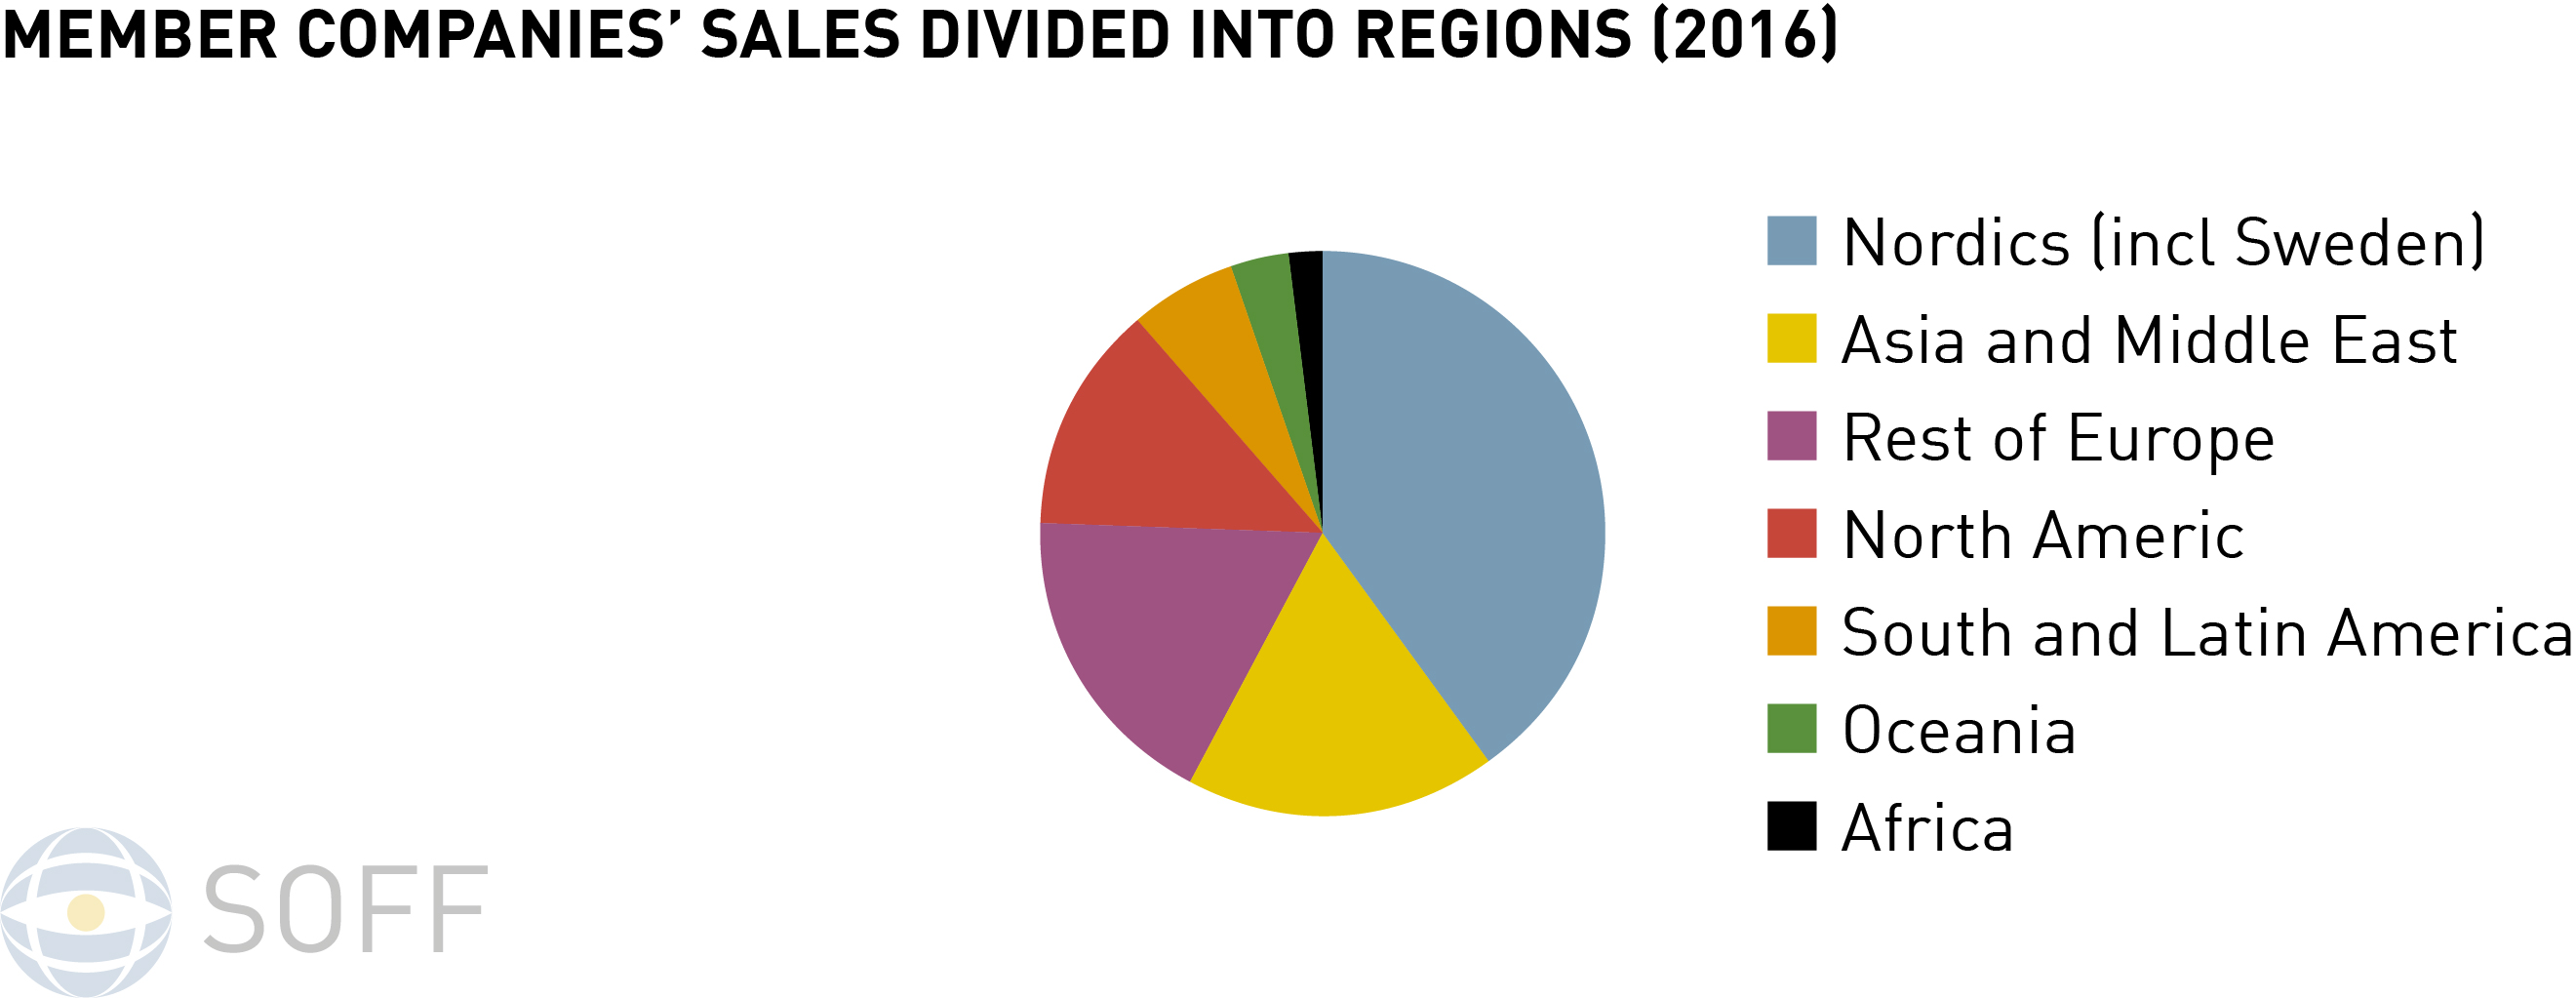 Member companies´sales divided into regions 2016